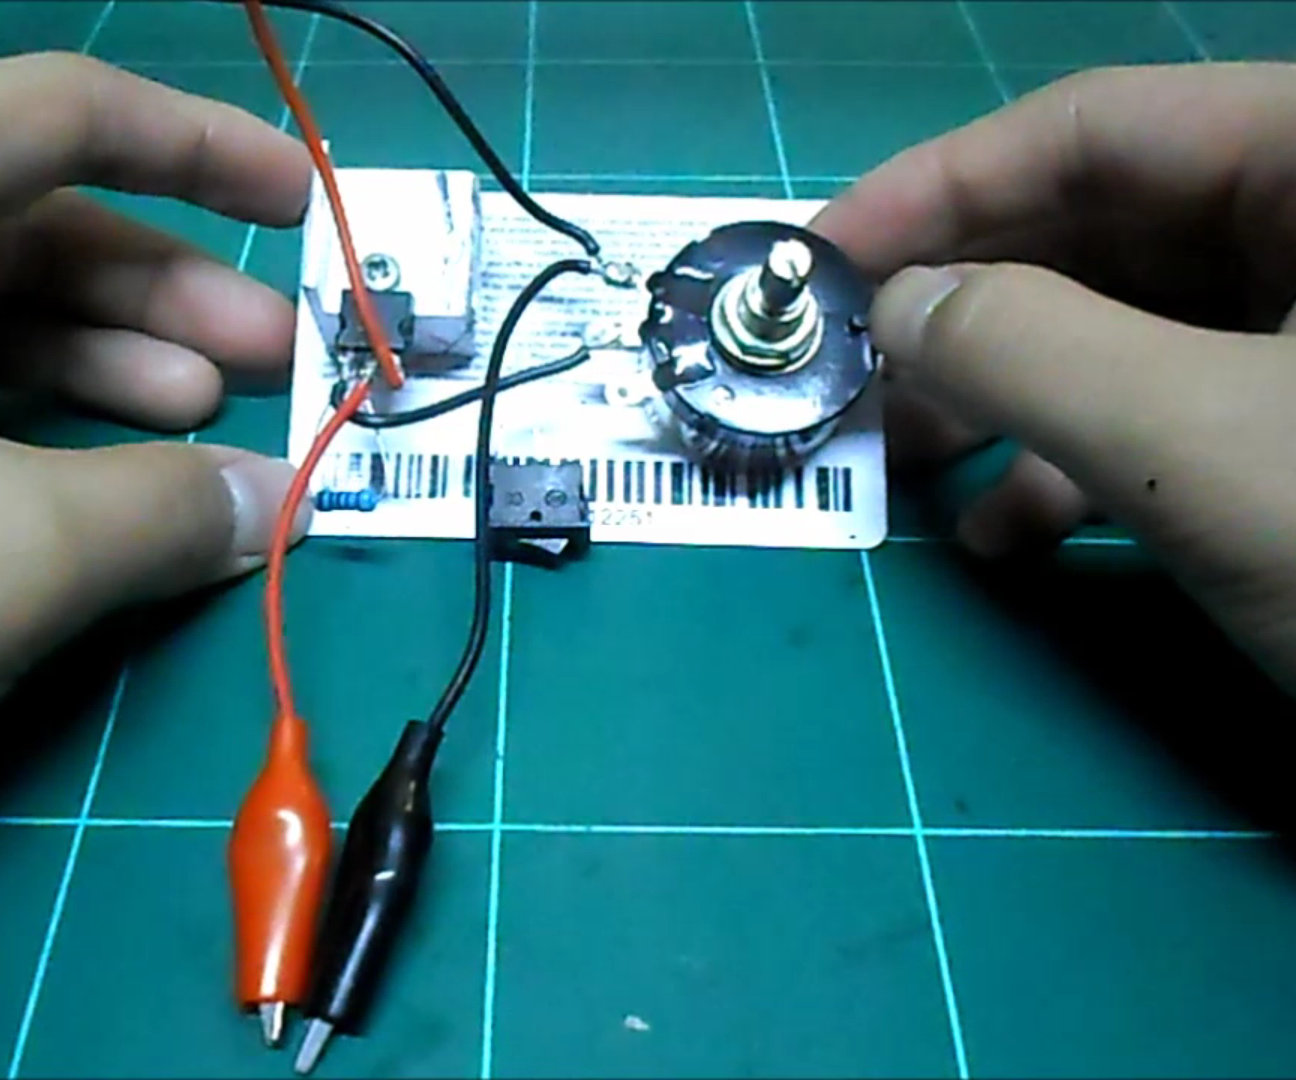 Variable Voltage Regulator Using the LM317